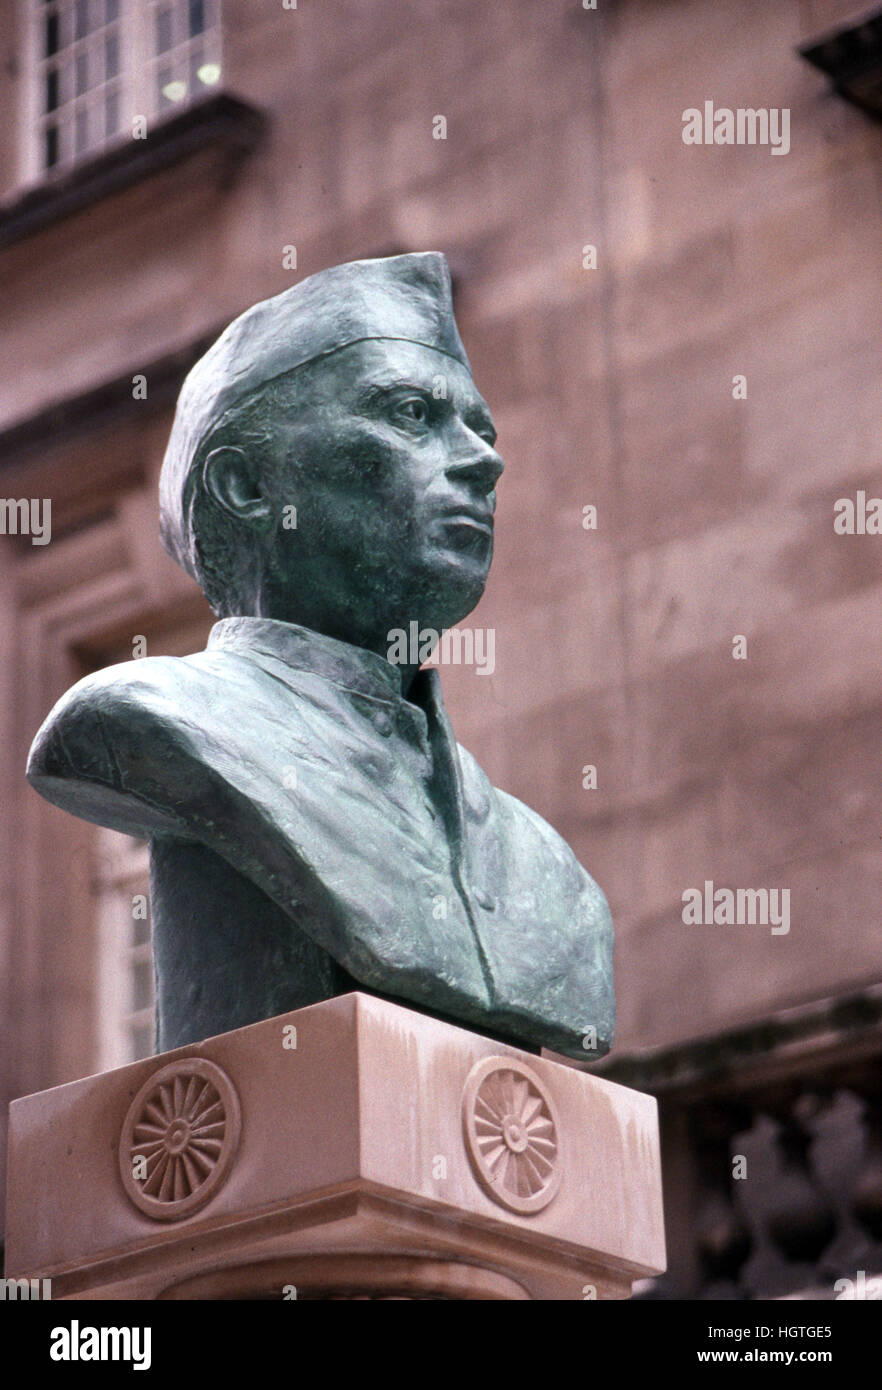 Jawaharlal Nehru first Prime Minister of India - Stock Image